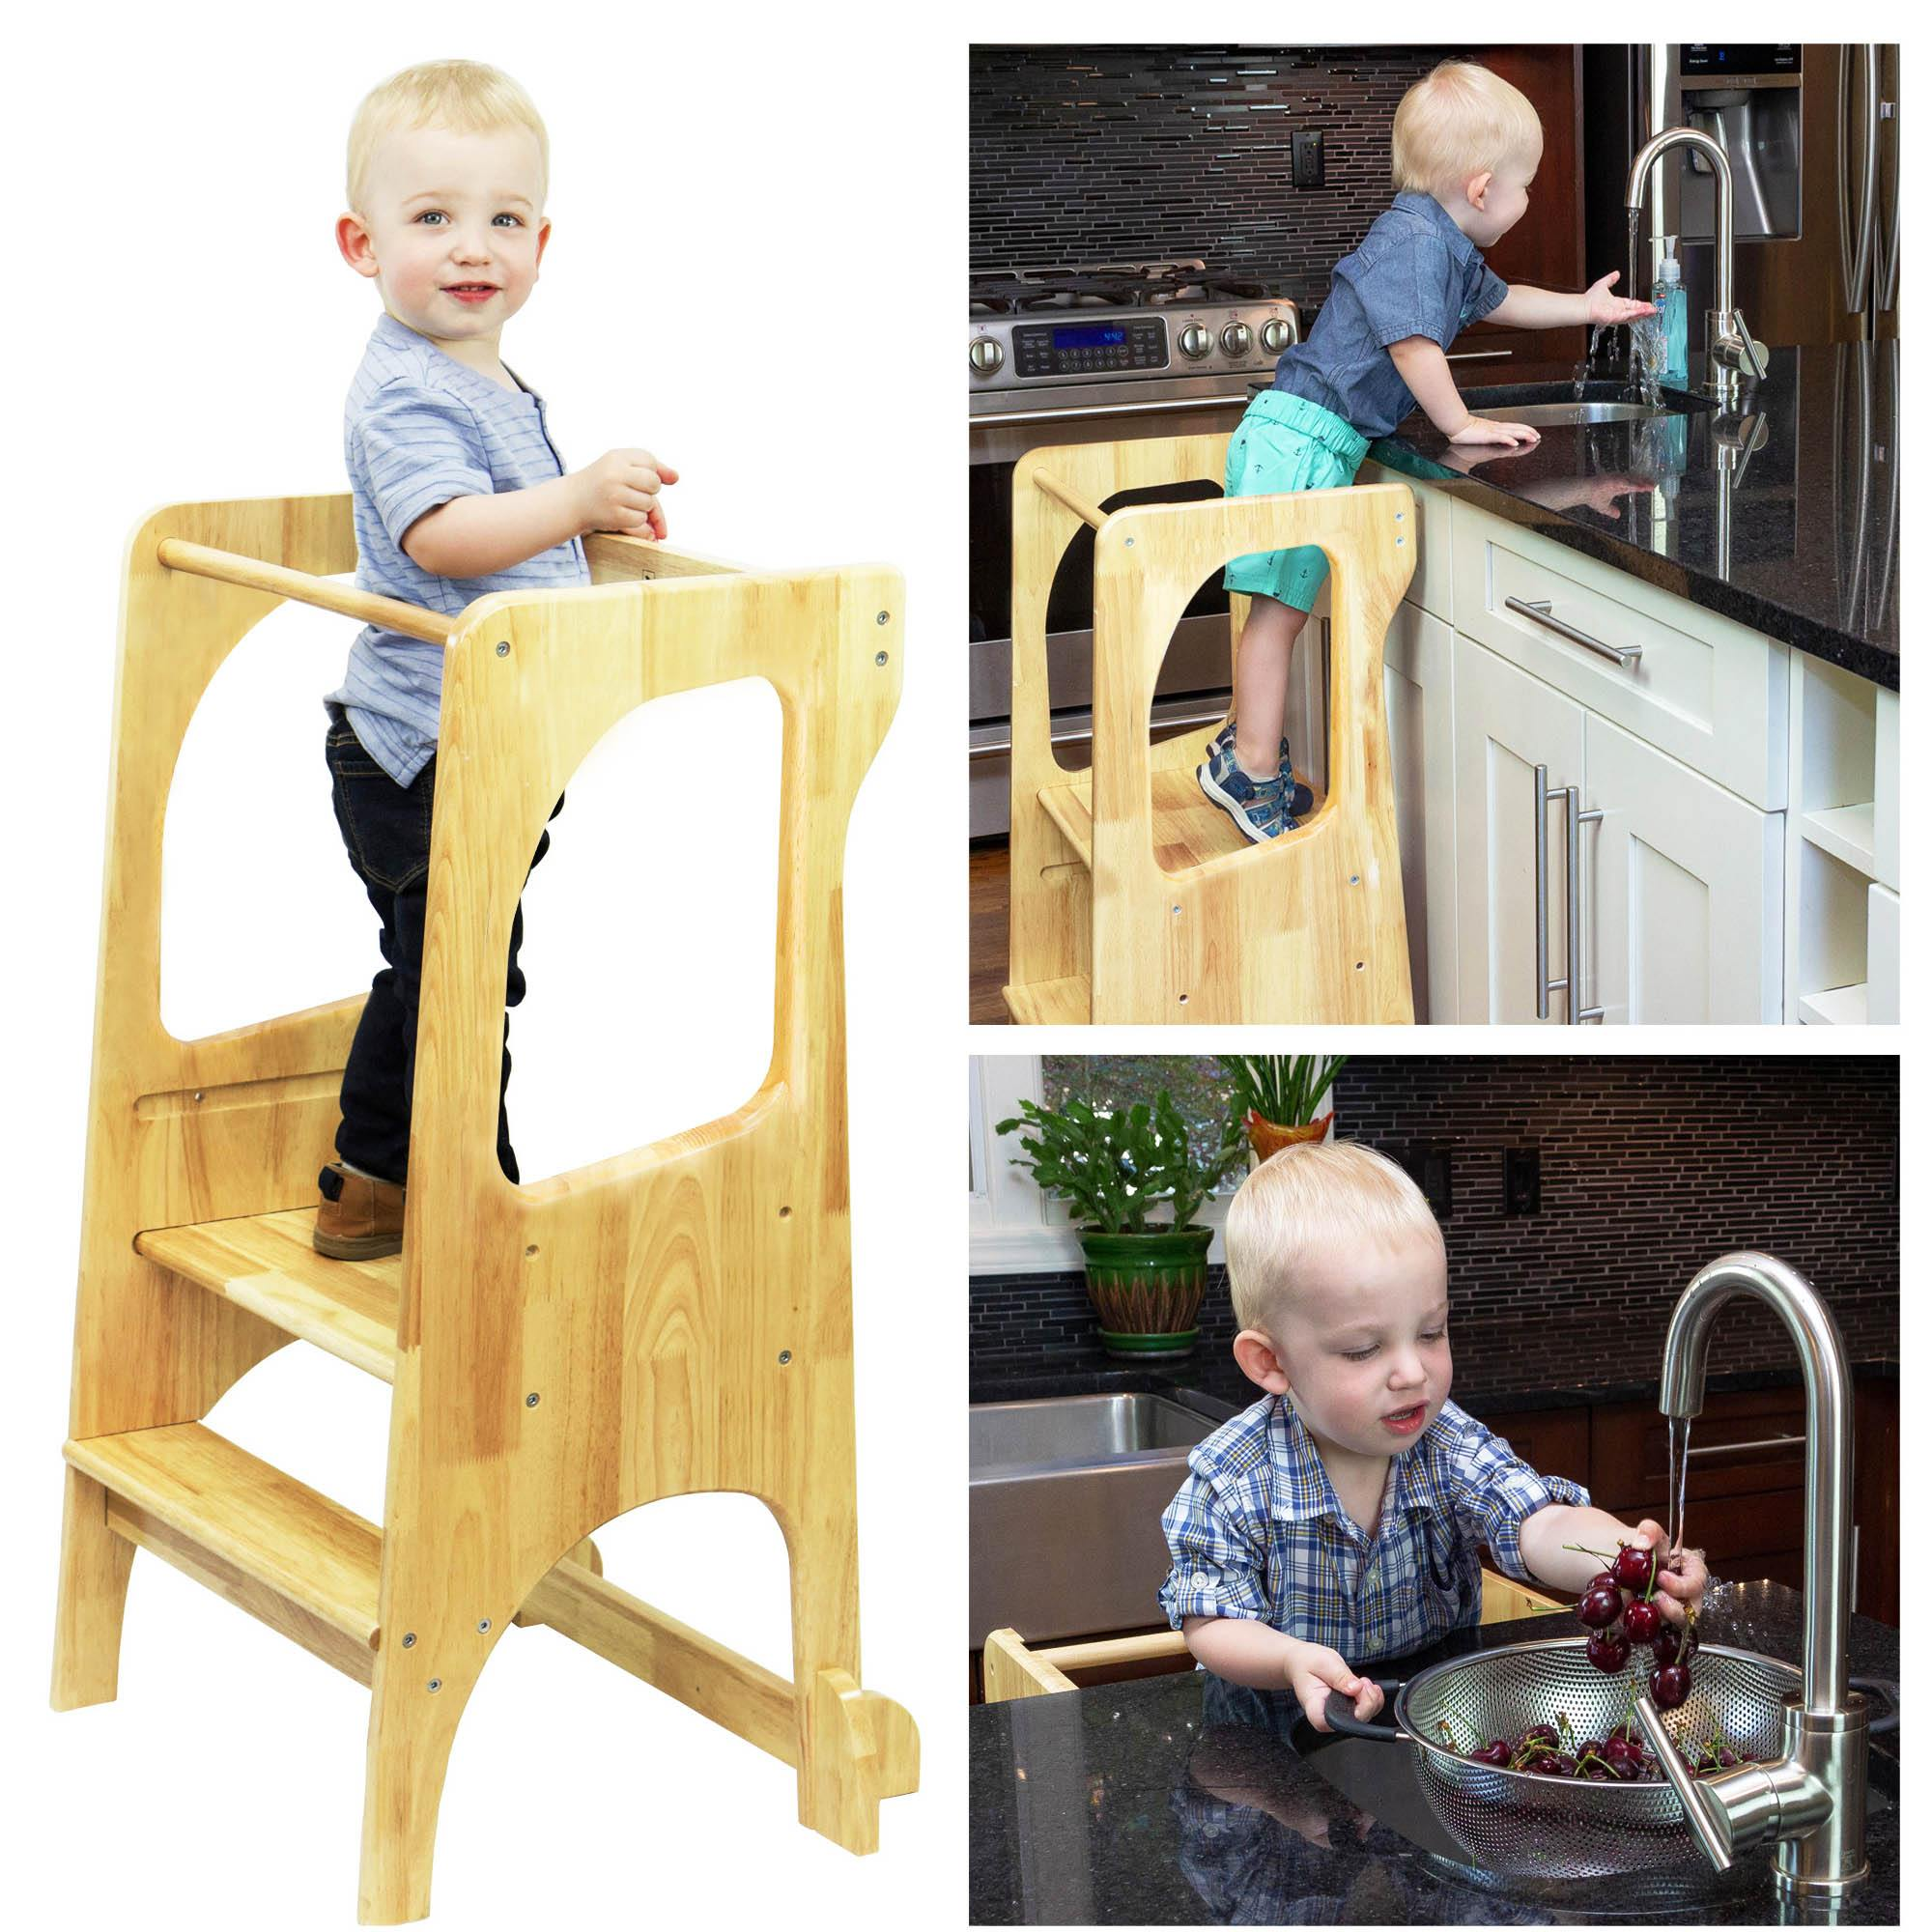 Kid standing on learning toddler tower in kitchen cooking